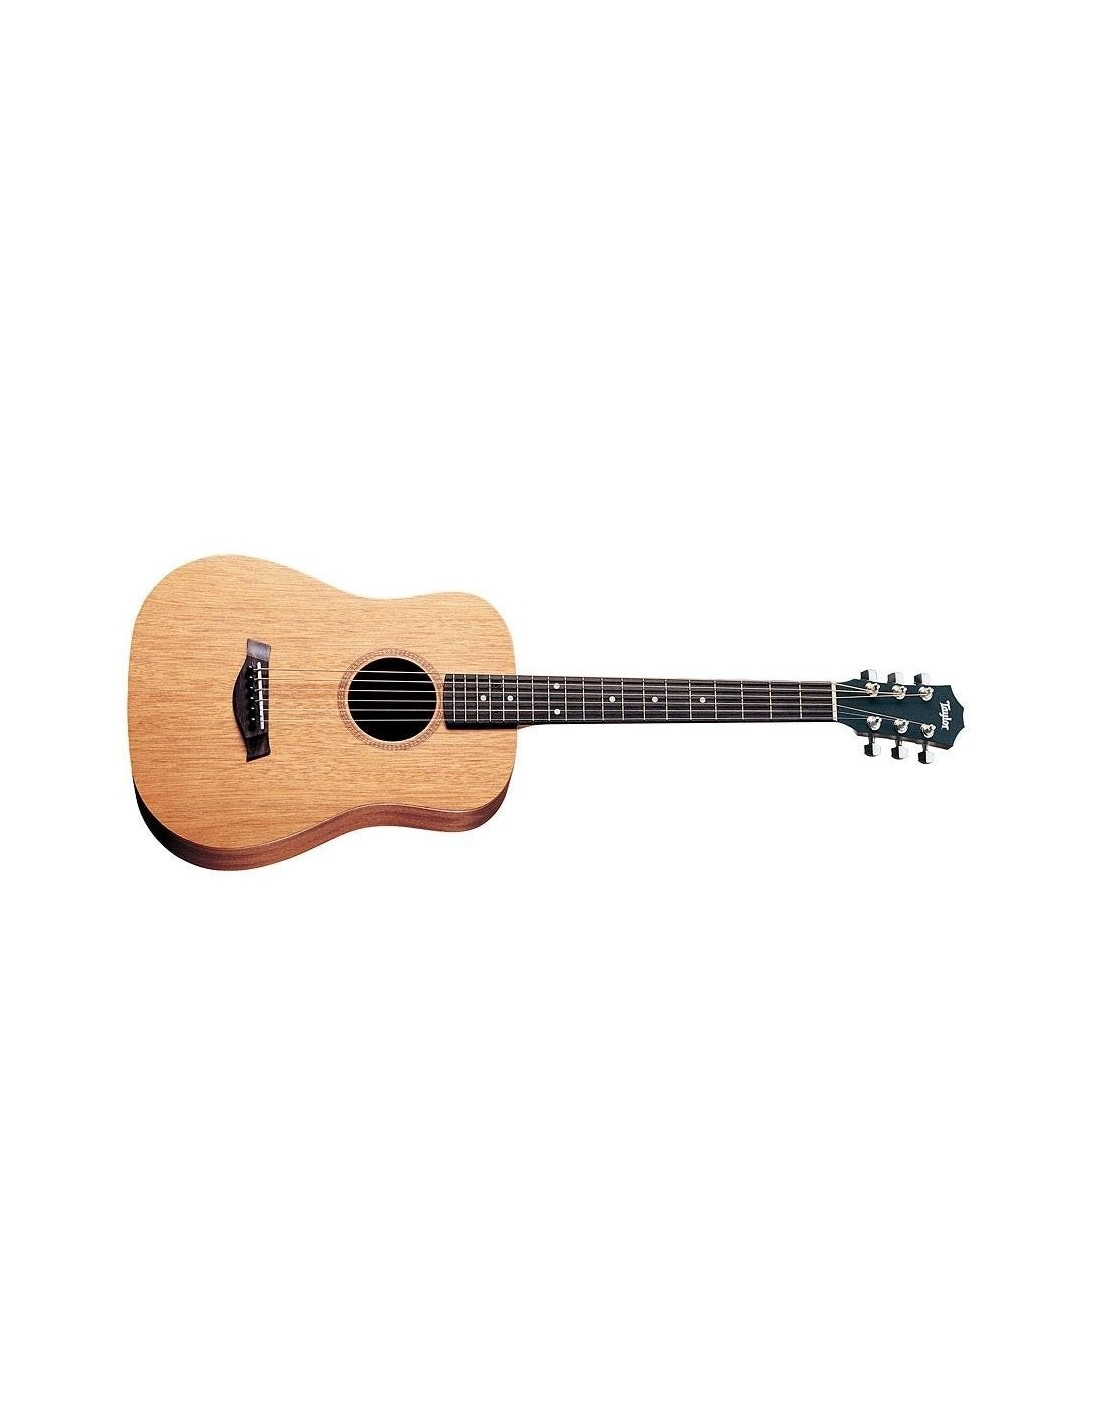 taylor 39 baby taylor 39 bt2 mahogany top travel acoustic guitar. Black Bedroom Furniture Sets. Home Design Ideas